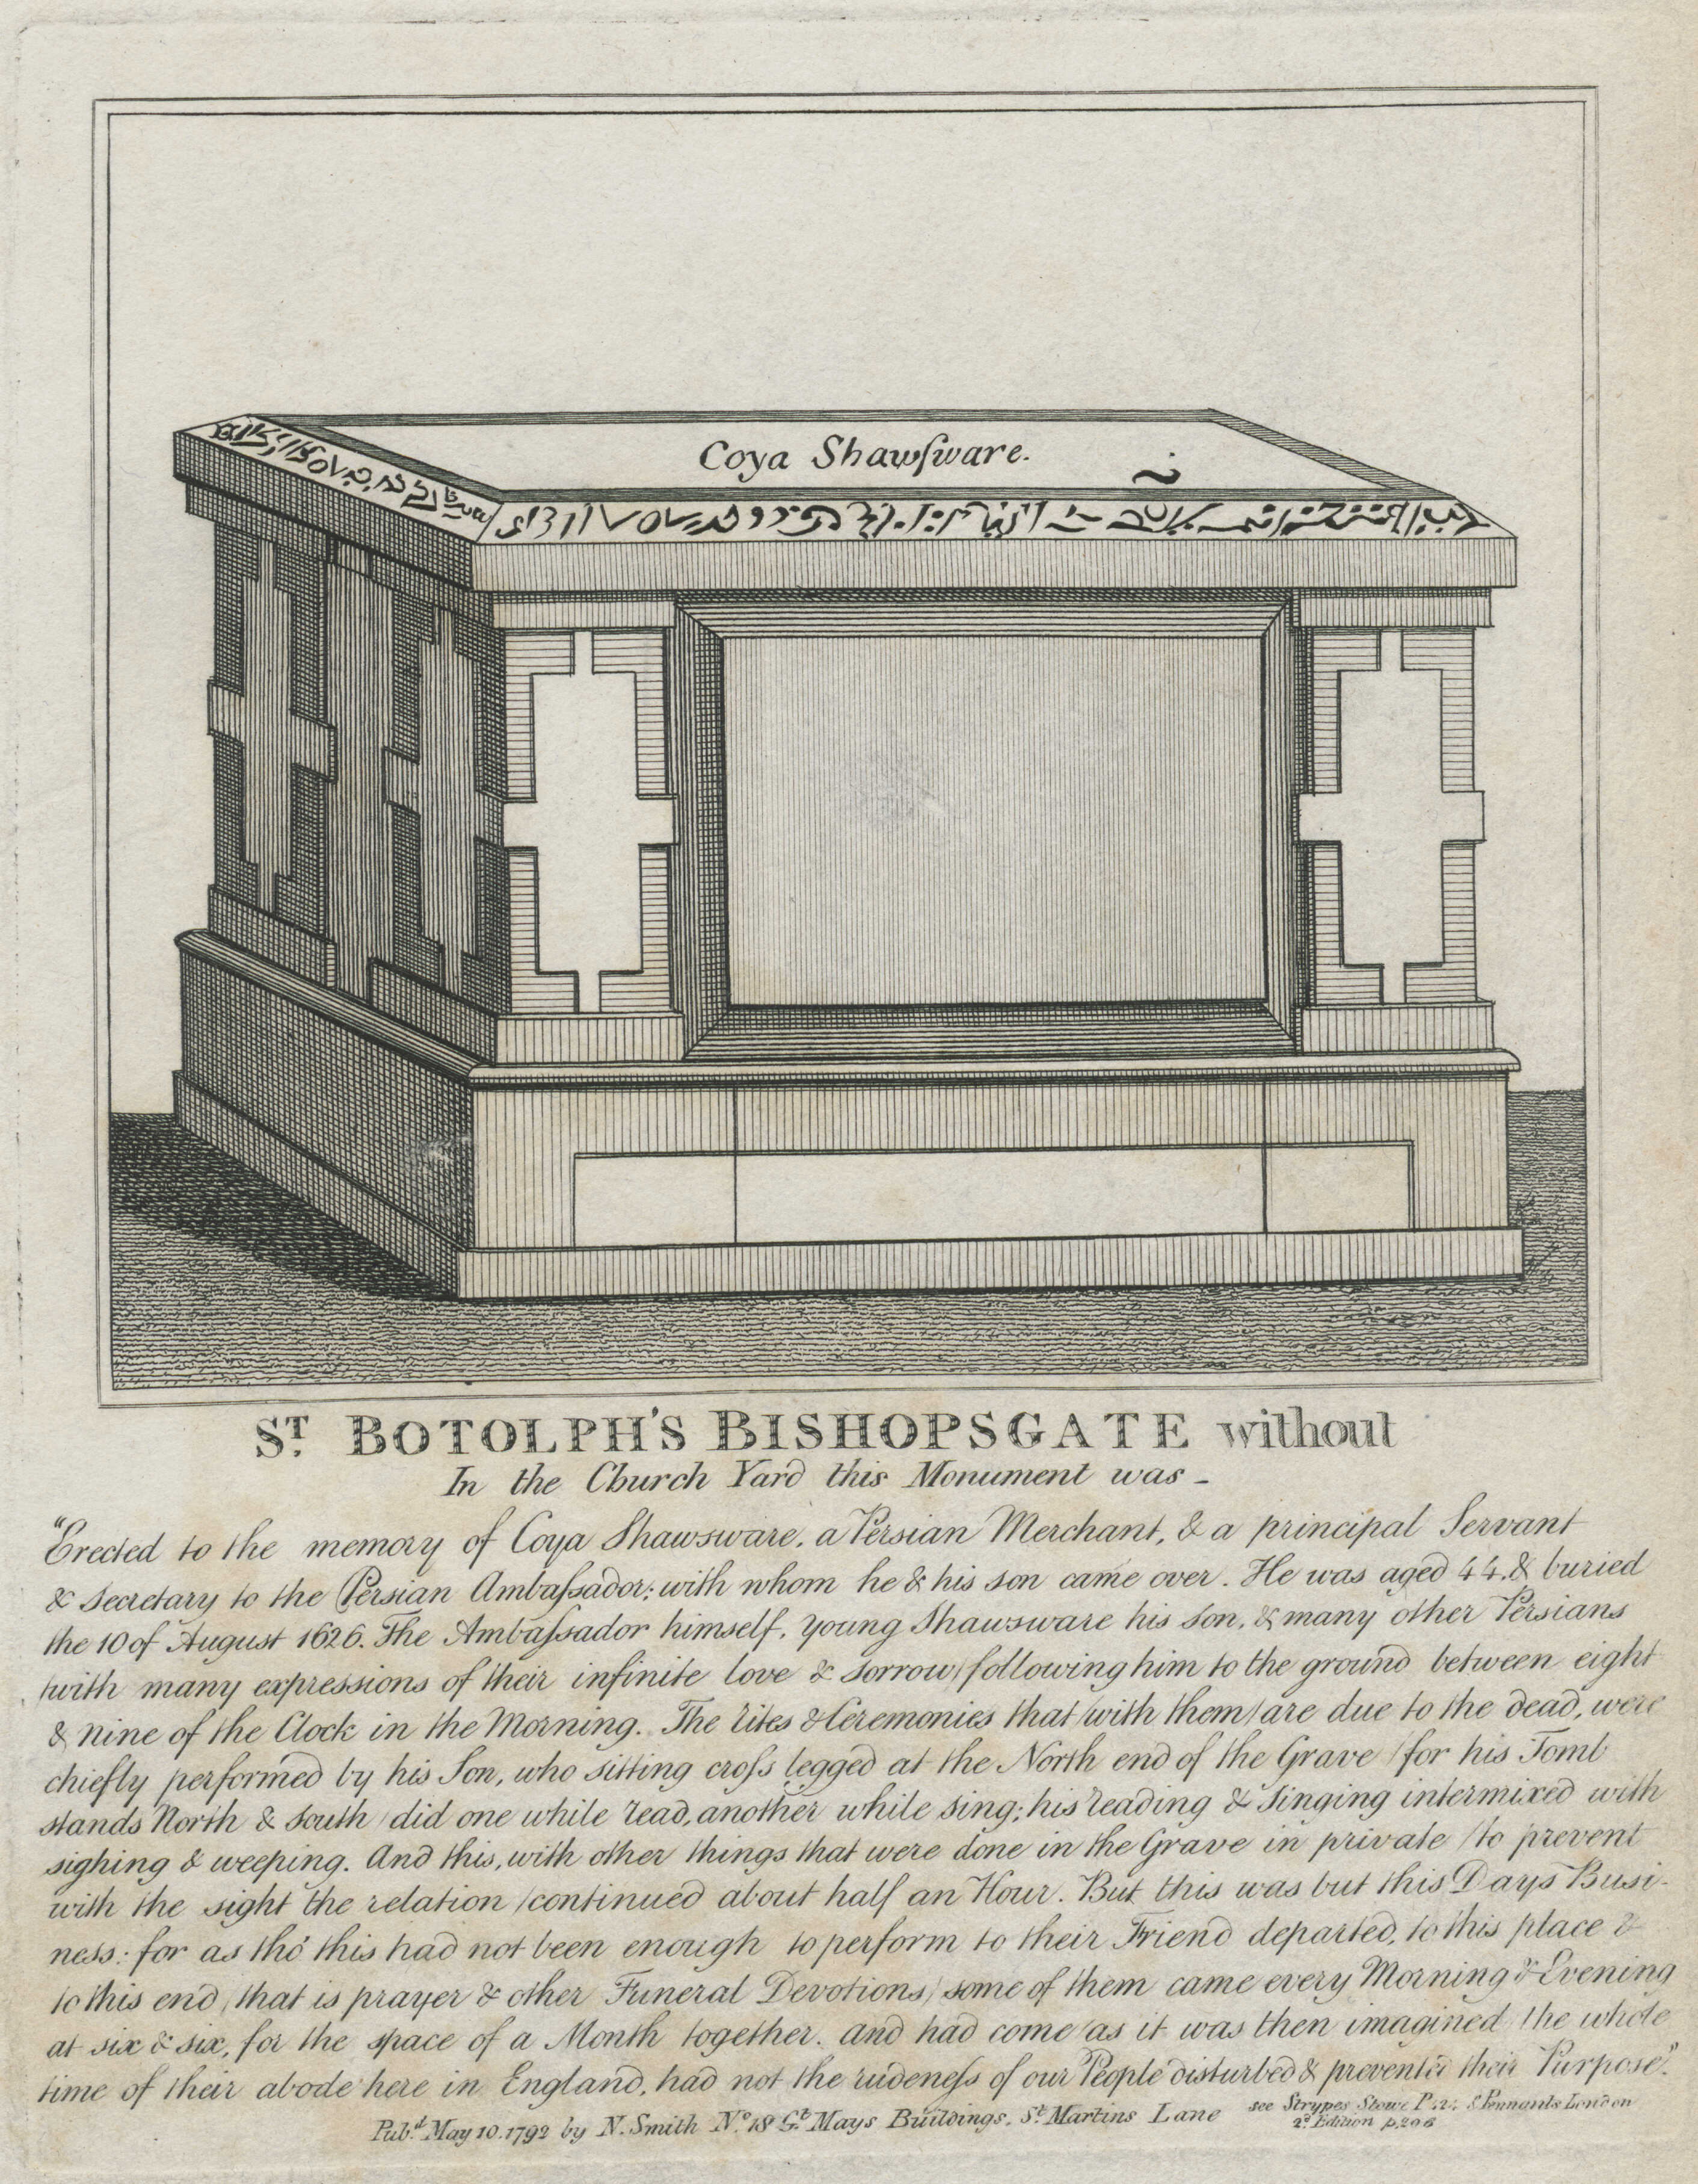 31-st-botolphs-bishopgsgate-without-monument-for-coya-shawsware